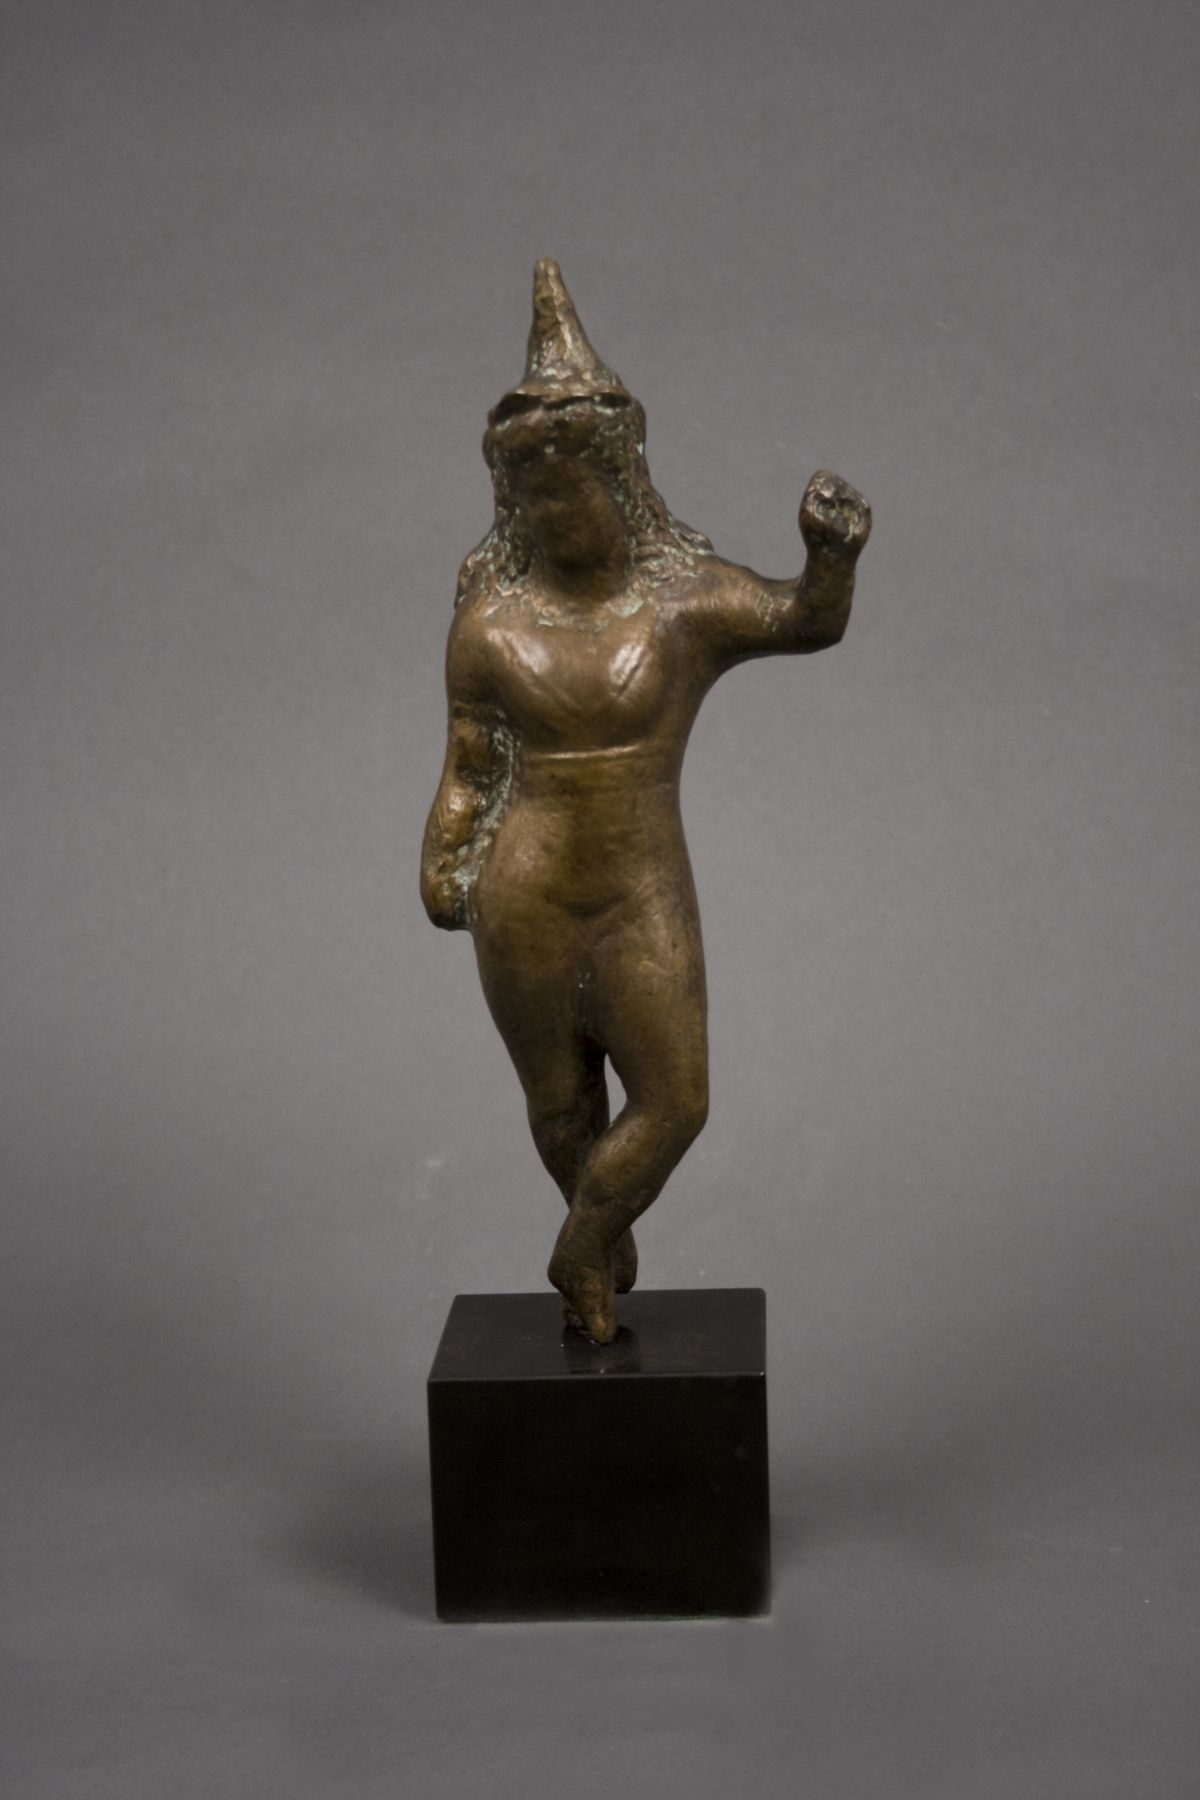 Elie Nadelman, Standing Woman in Conical Hat, Raised Arm, c. 1936 - 46, bronze with light brown patina, 9 7/8 inches high